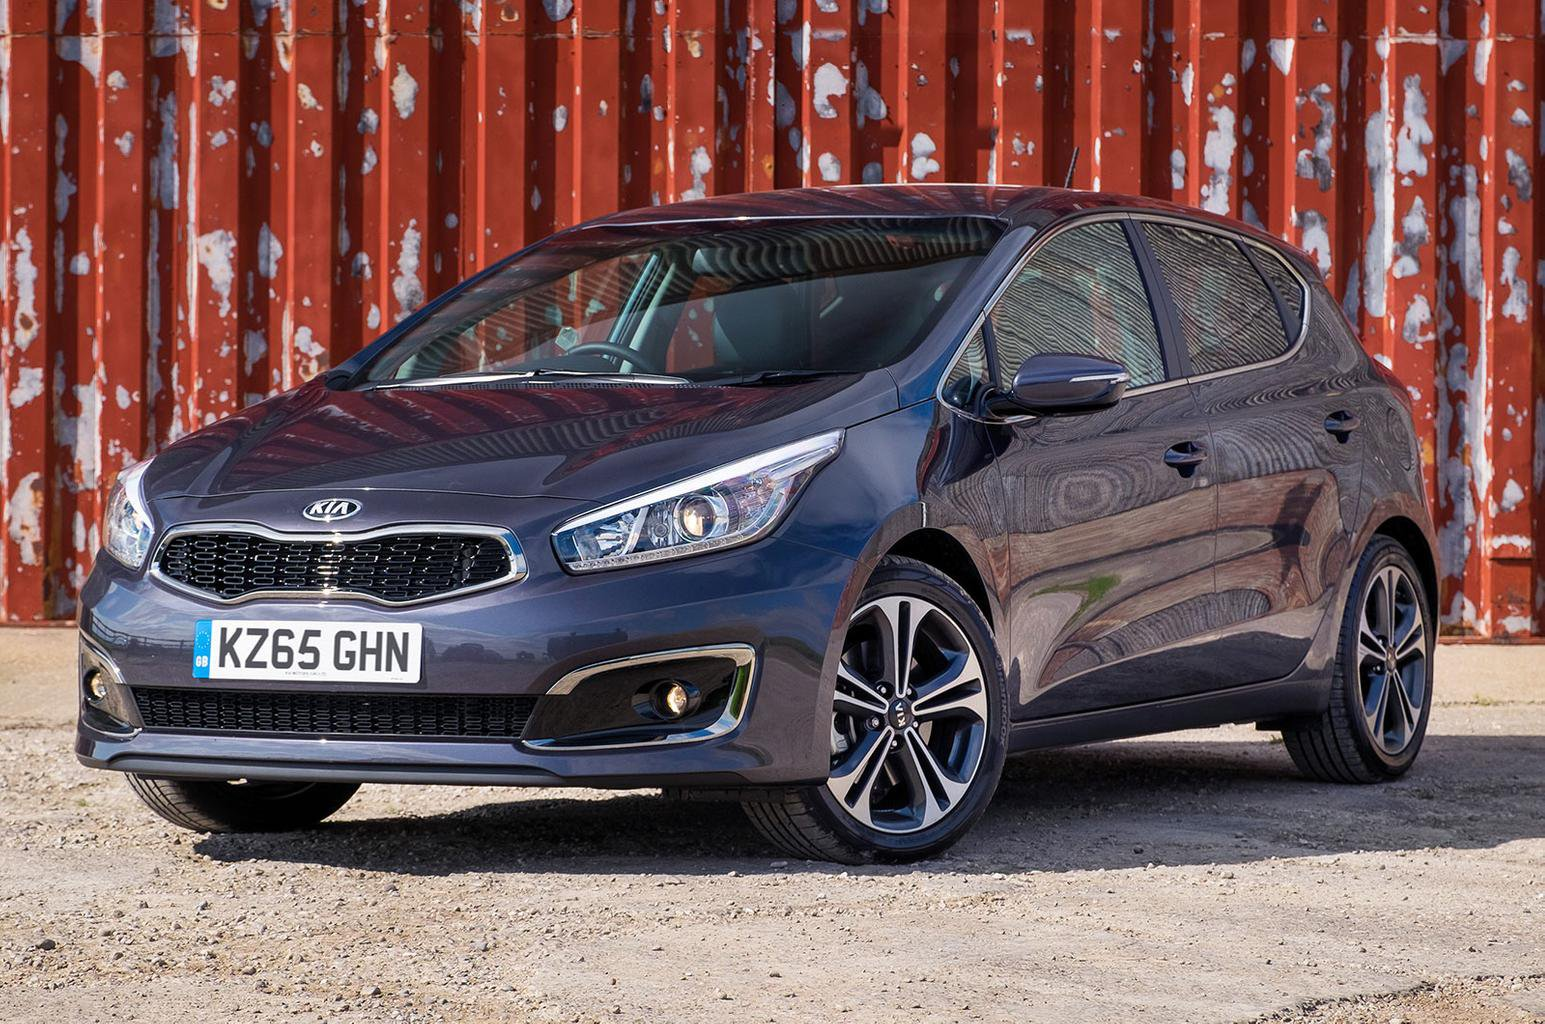 2015 Kia Ceed 1.6 CRDi 134 DCT review